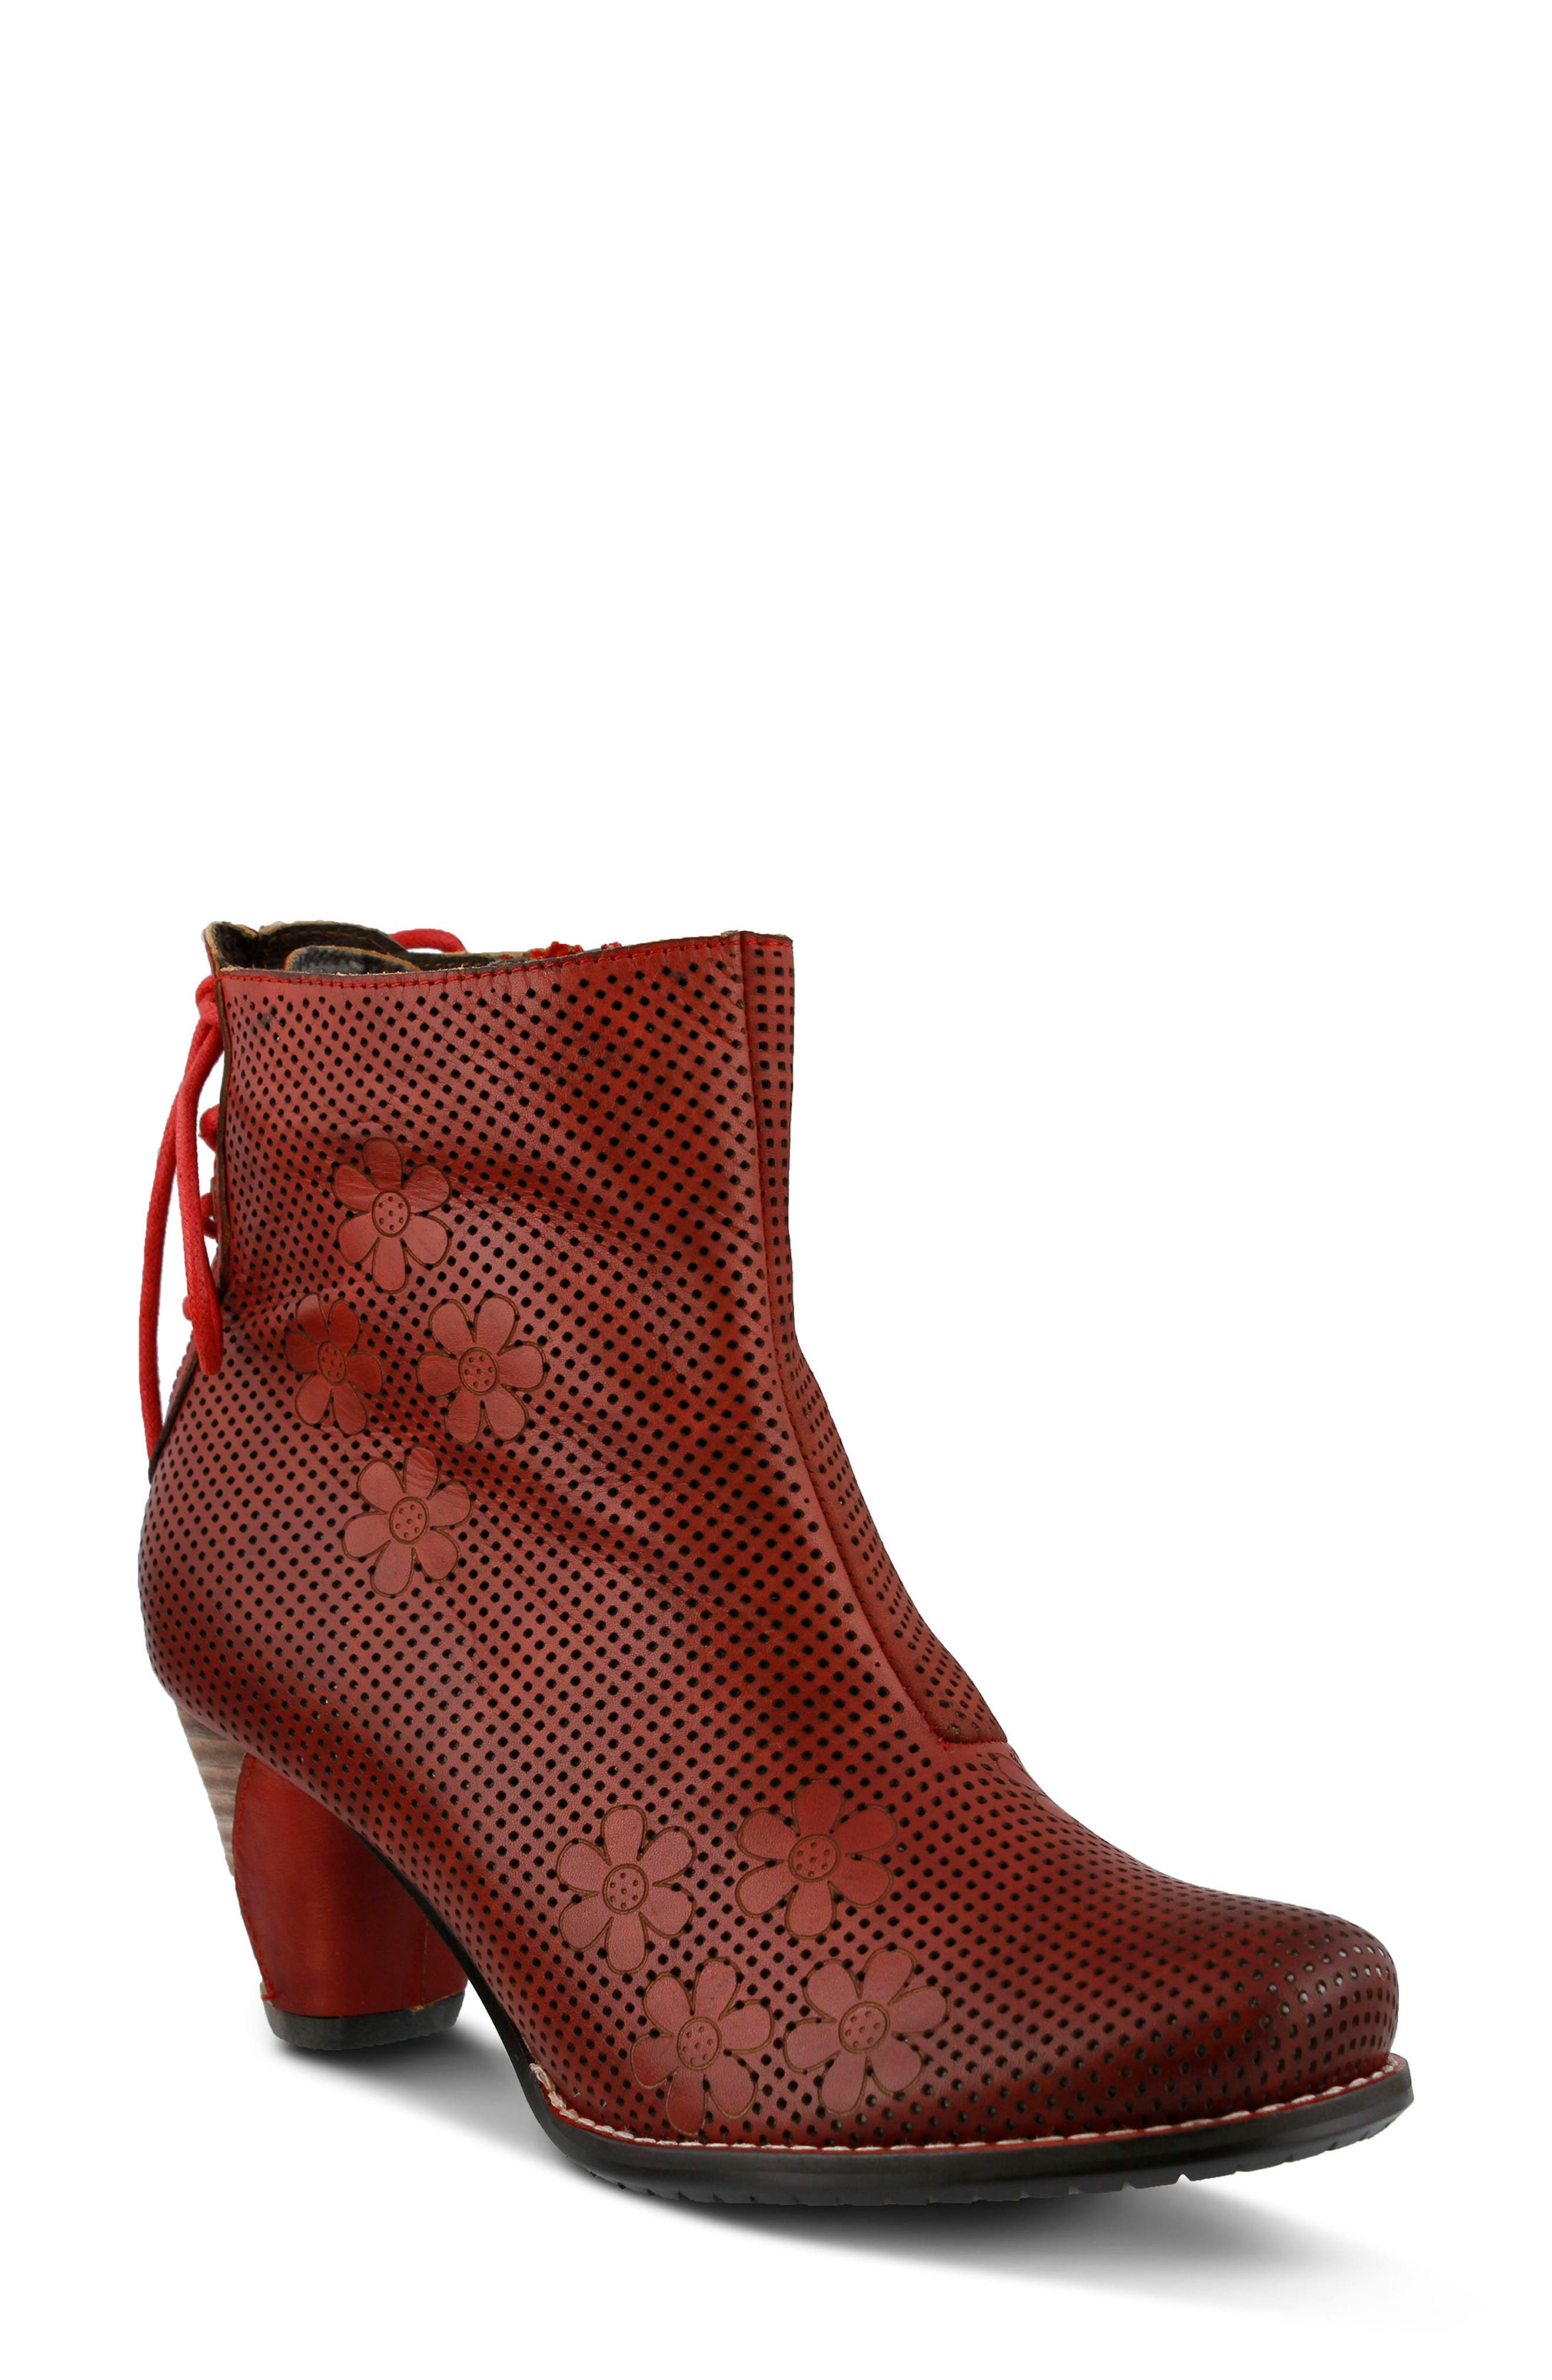 L'Artiste Teca Bootie,                             Main thumbnail 1, color,                             Red Leather